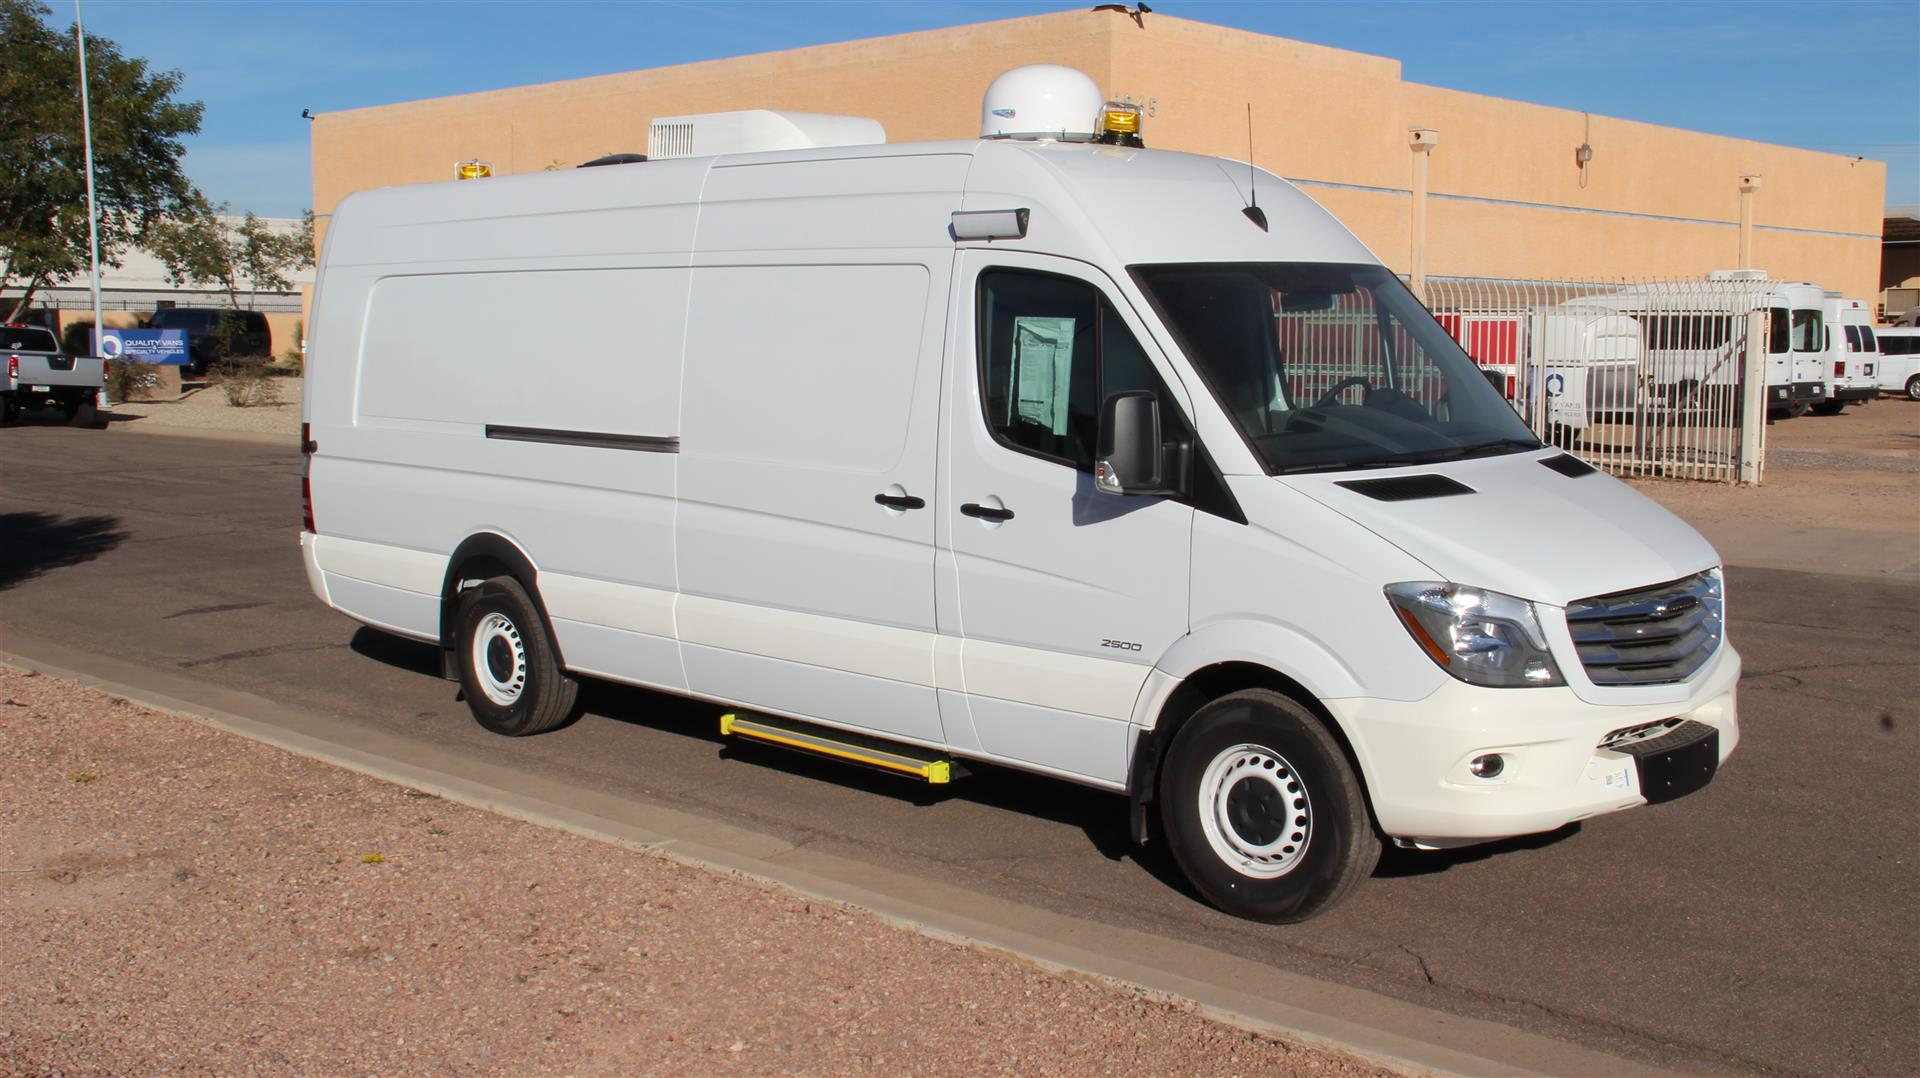 Toyota Dealership San Diego >> Public Safety Vehicles Quality Vans Specialty Vehicles | Upcomingcarshq.com